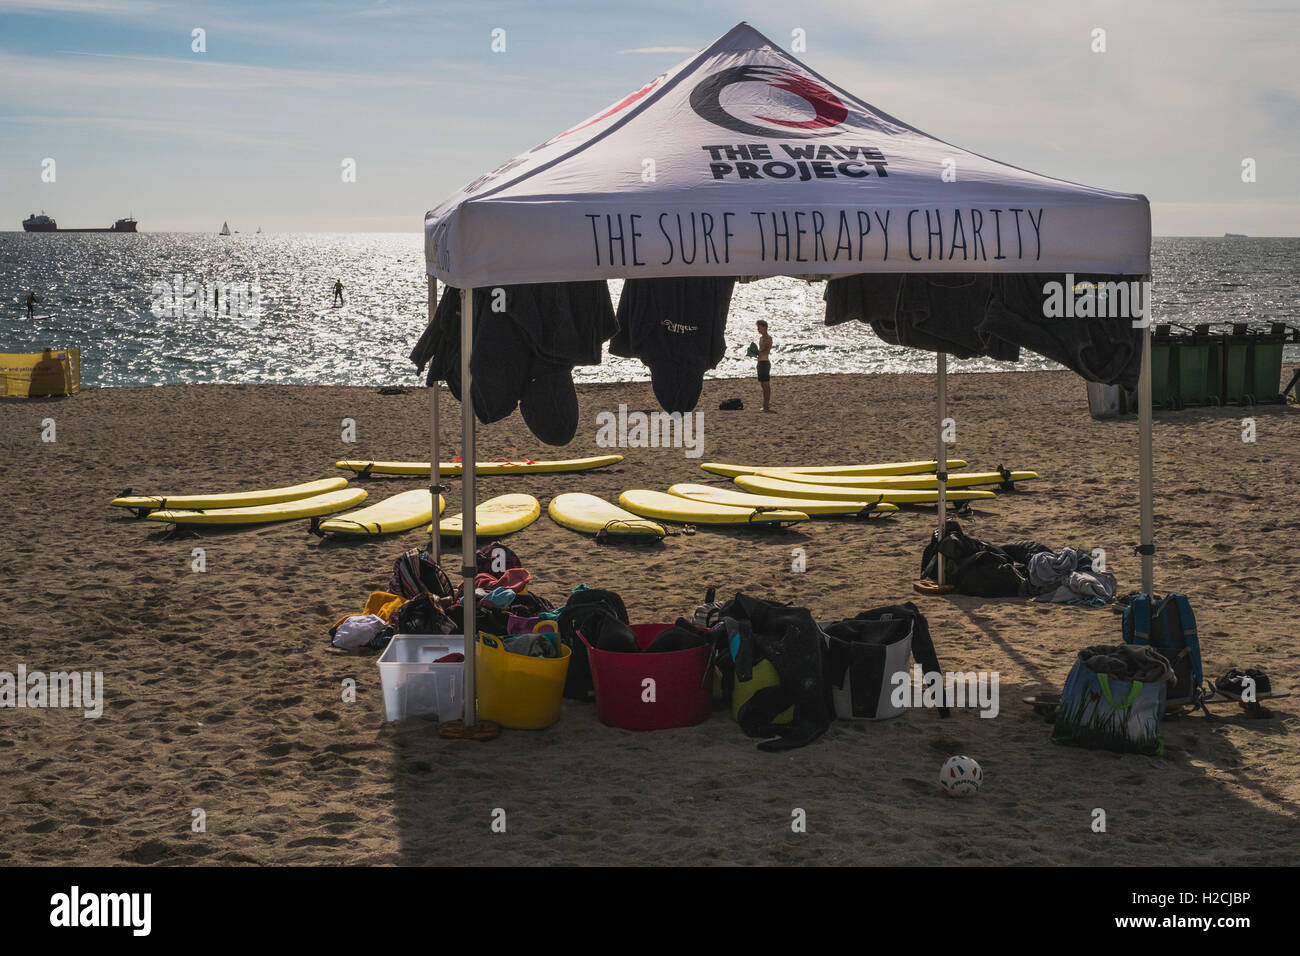 The Wave Project at Gyllyngvase Beach, Falmouth helping youngsters overcome issues through surfing. - Stock Image